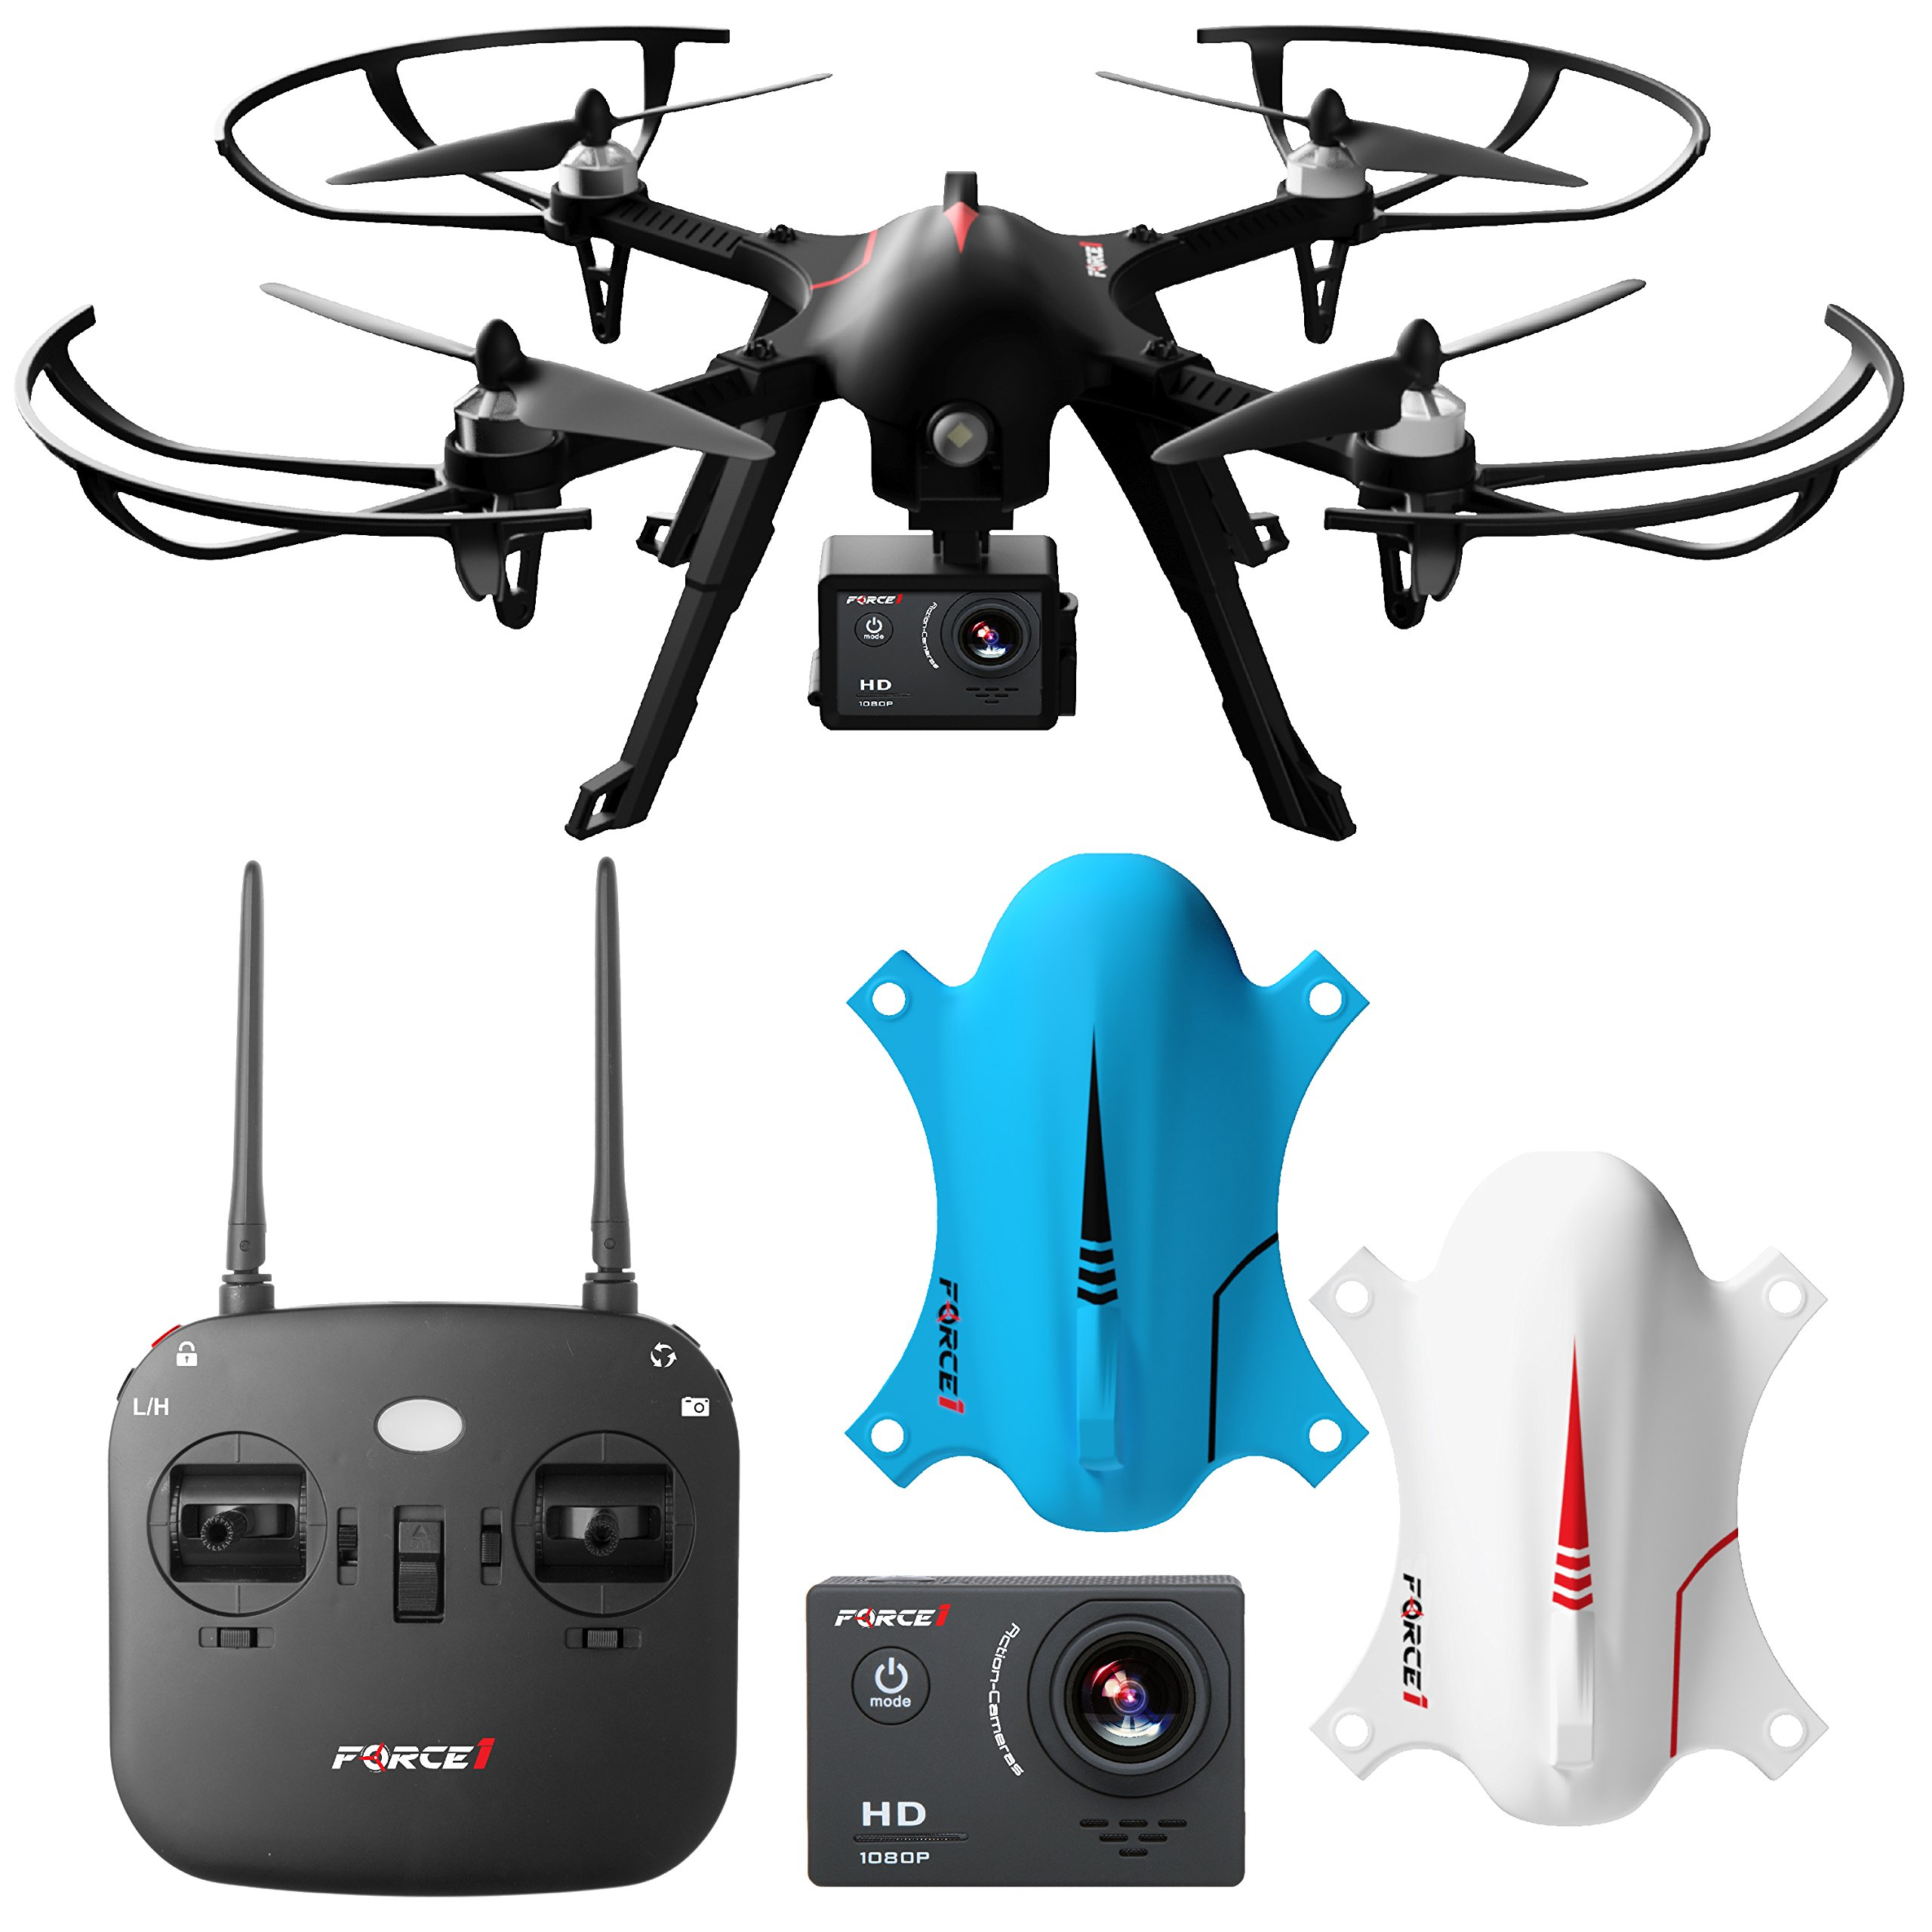 F100 Ghost Drone with Camera - 1080p Go Pro Drones for Adults and Kids - RC Brushless Drone with Go Pro Camera Mount, Long Range & Extra Battery